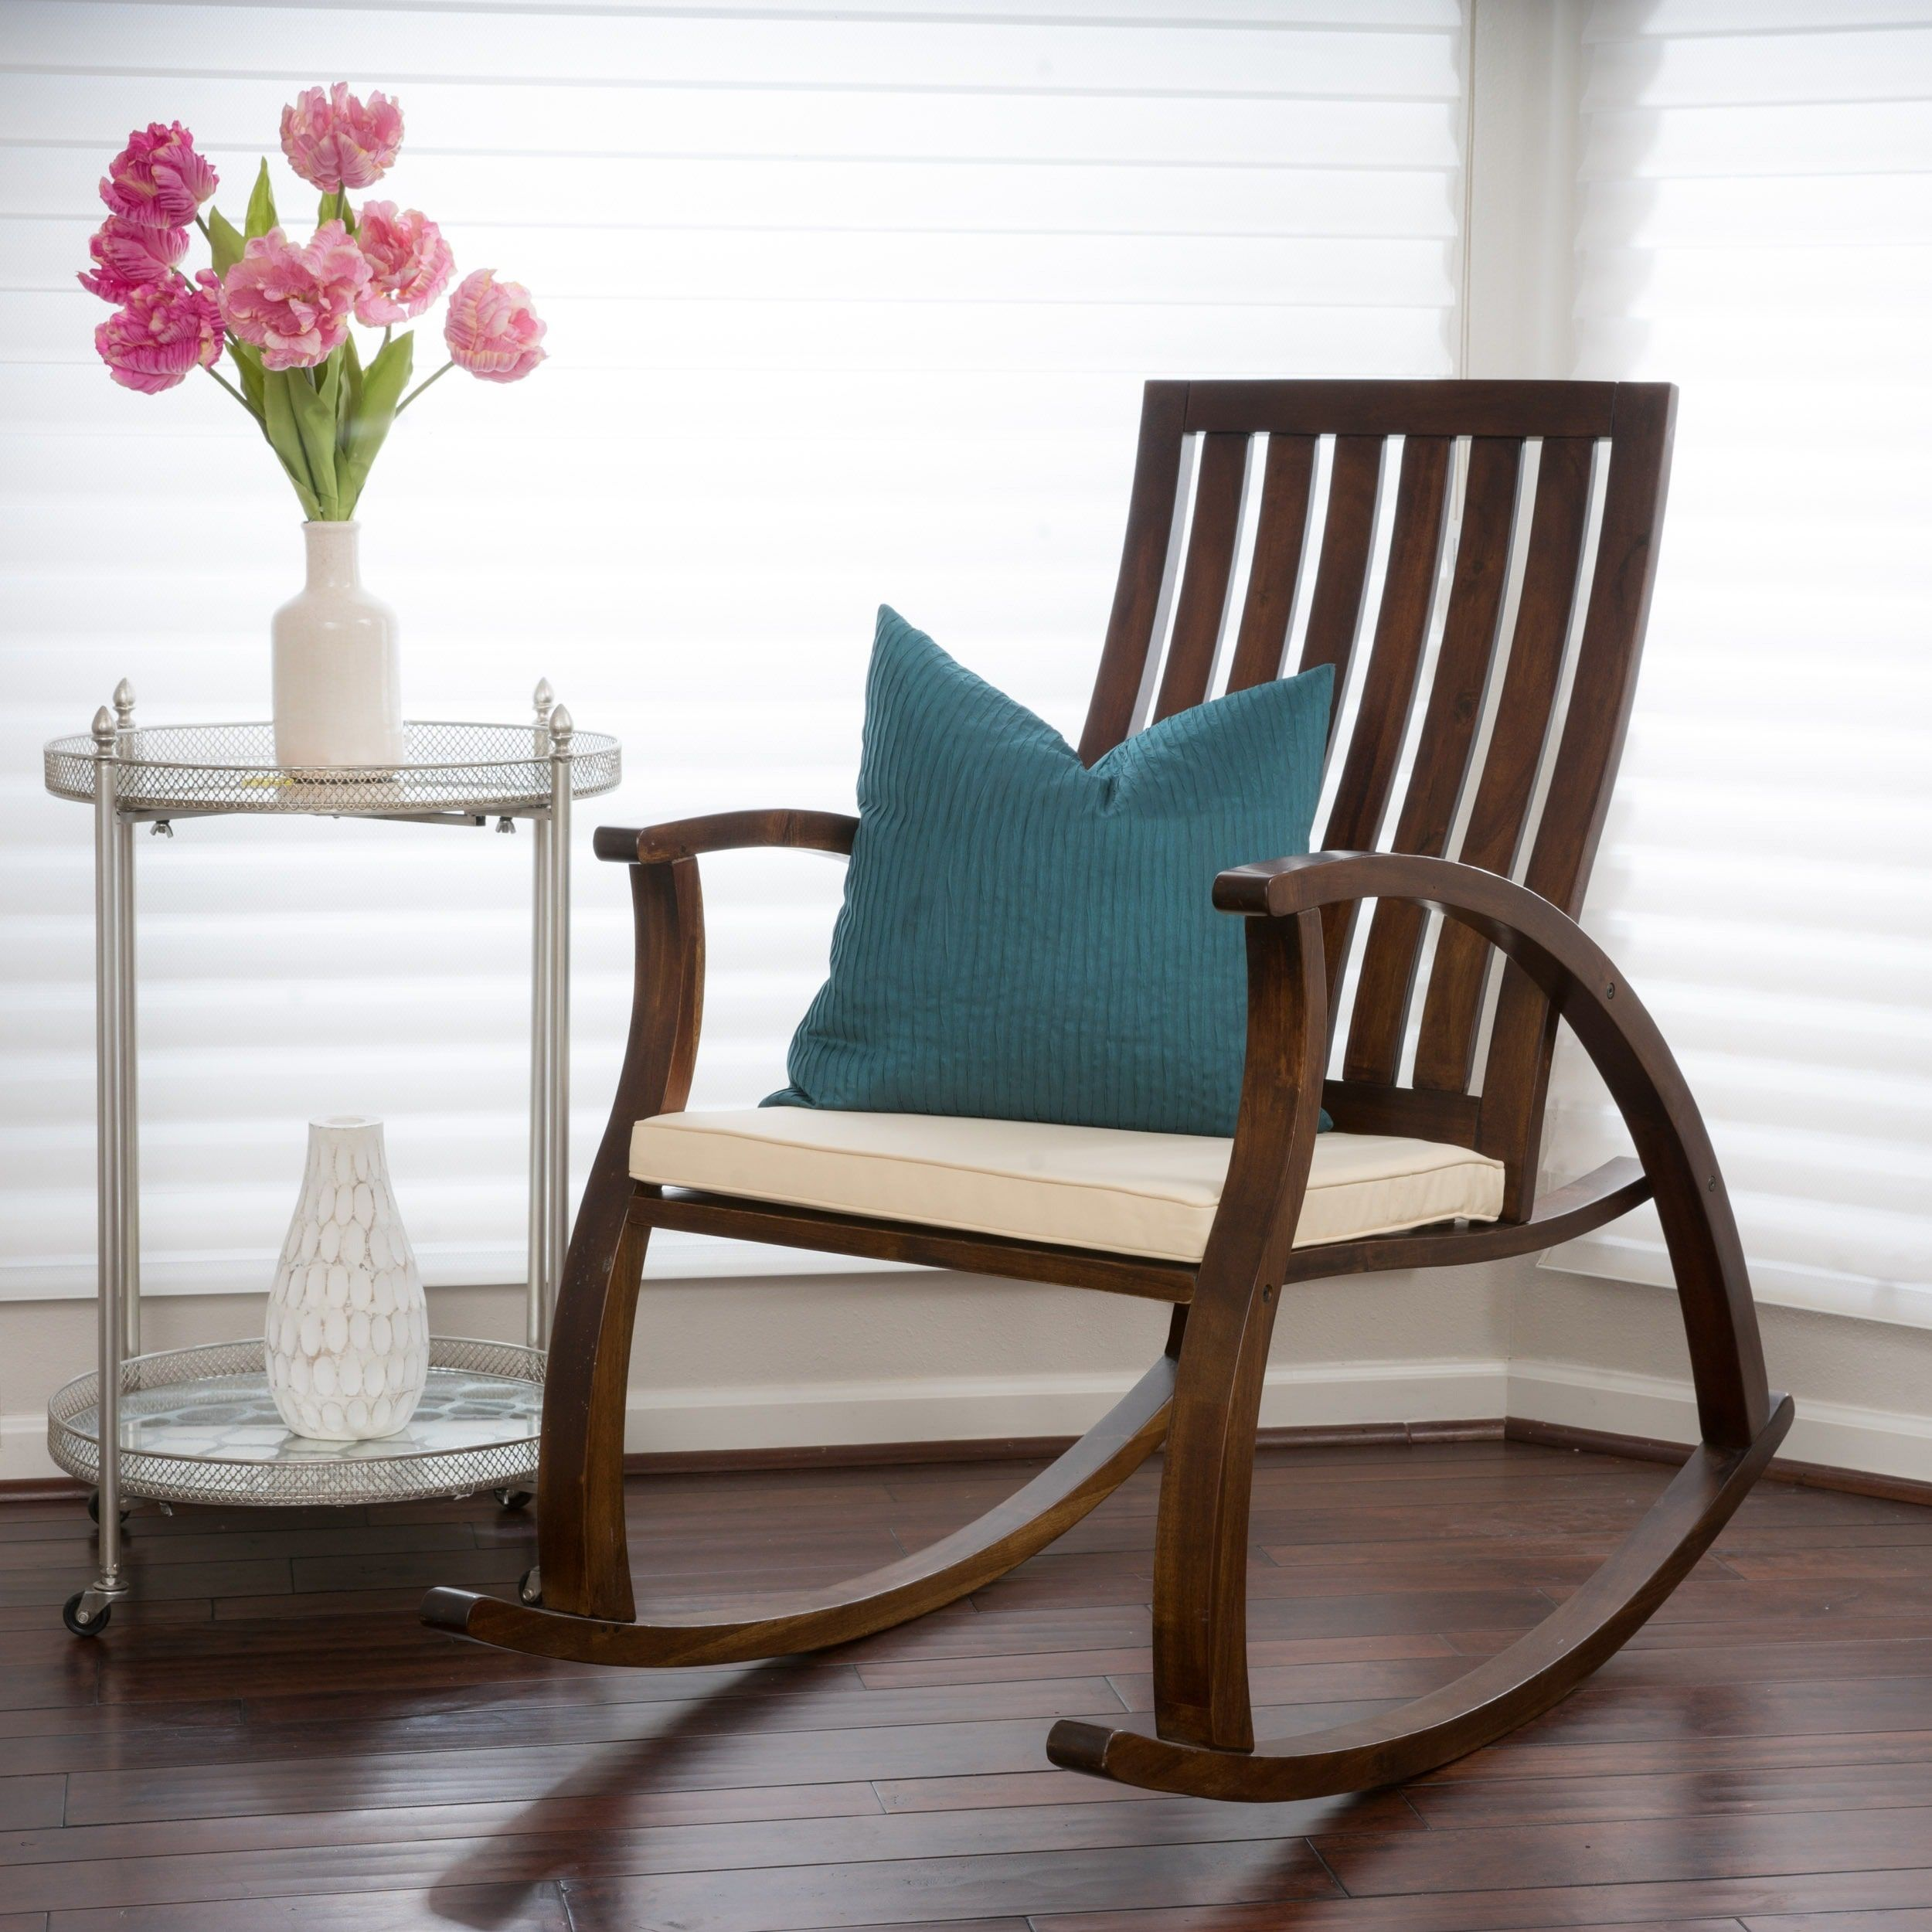 Ikea lillberg rocking chair - Abraham Brown Mahogany Wood Rocking Chair W Cushion By Christopher Knight Home Overstock